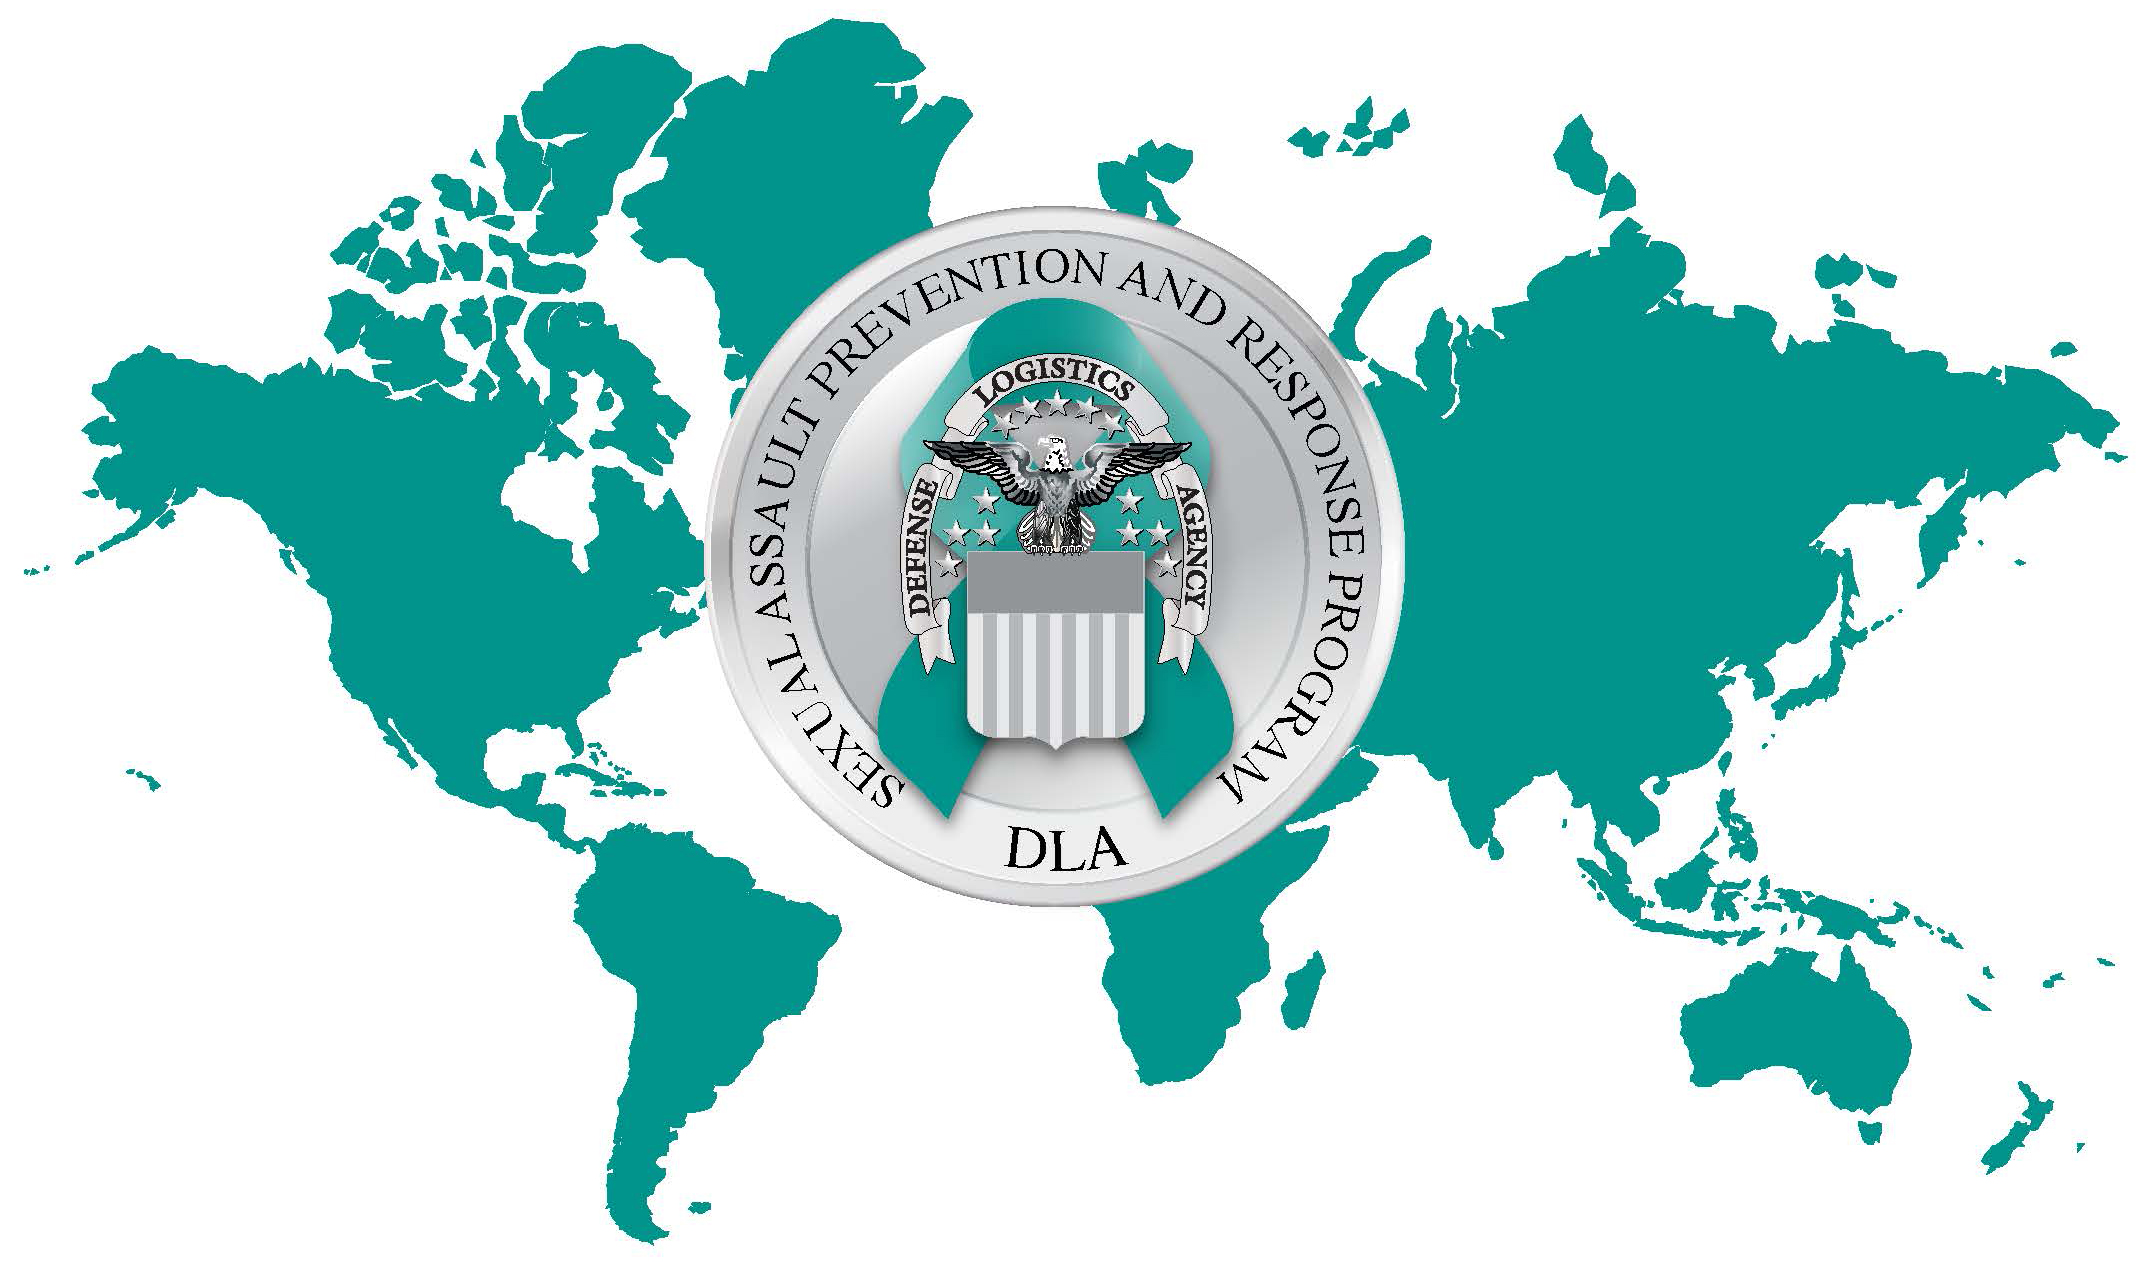 DLA SAPR emblem with teal world map